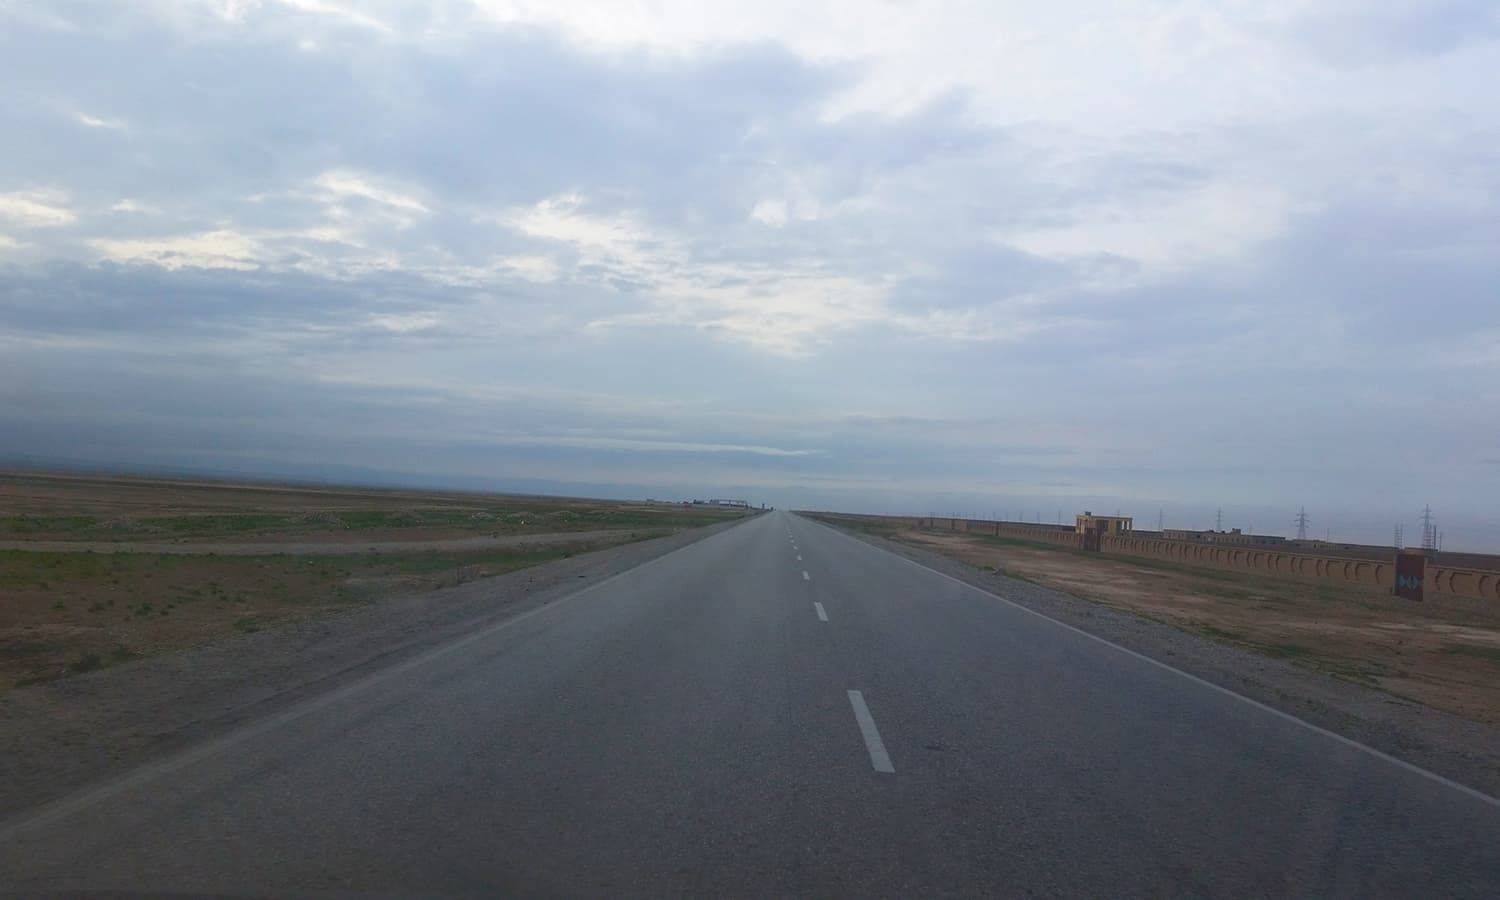 Treeless plain on approach to Mazar-e-Sharif.